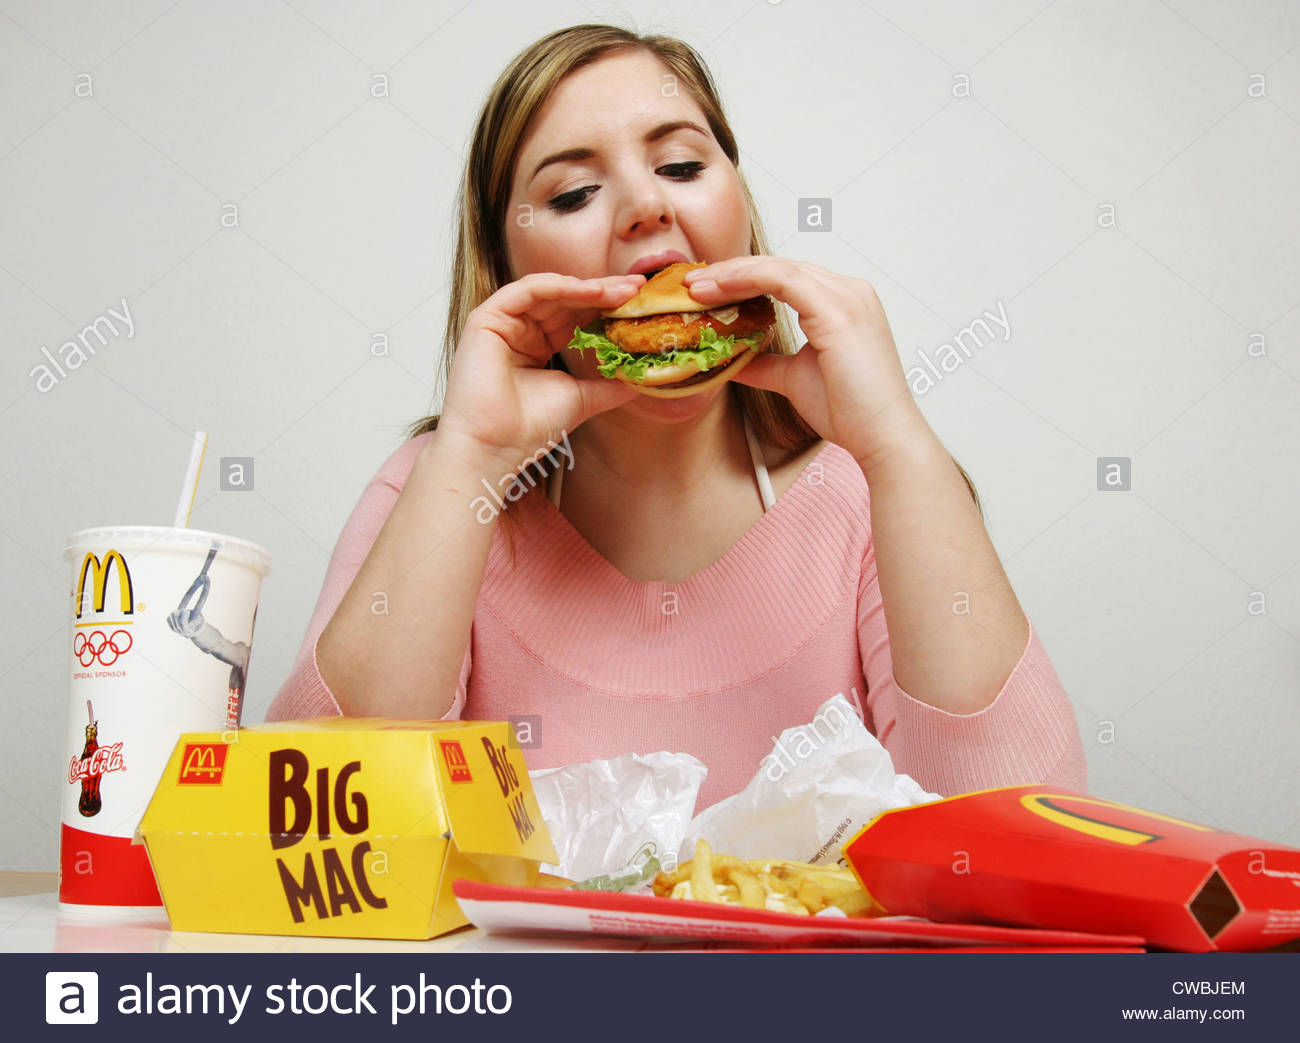 how to get fat fast for girl